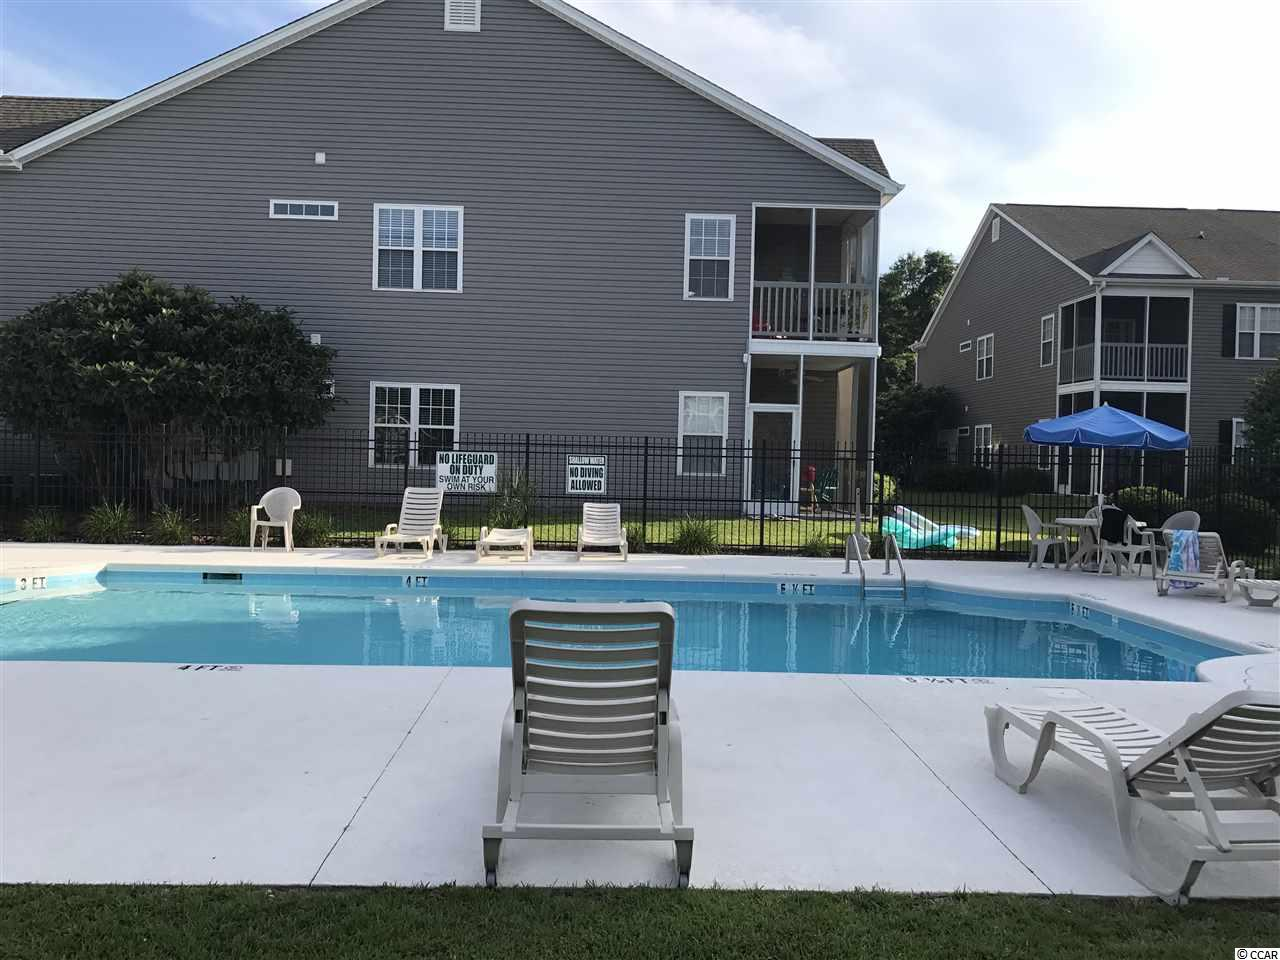 Pawleys Pavilion - 42A condo for sale in Pawleys Island, SC